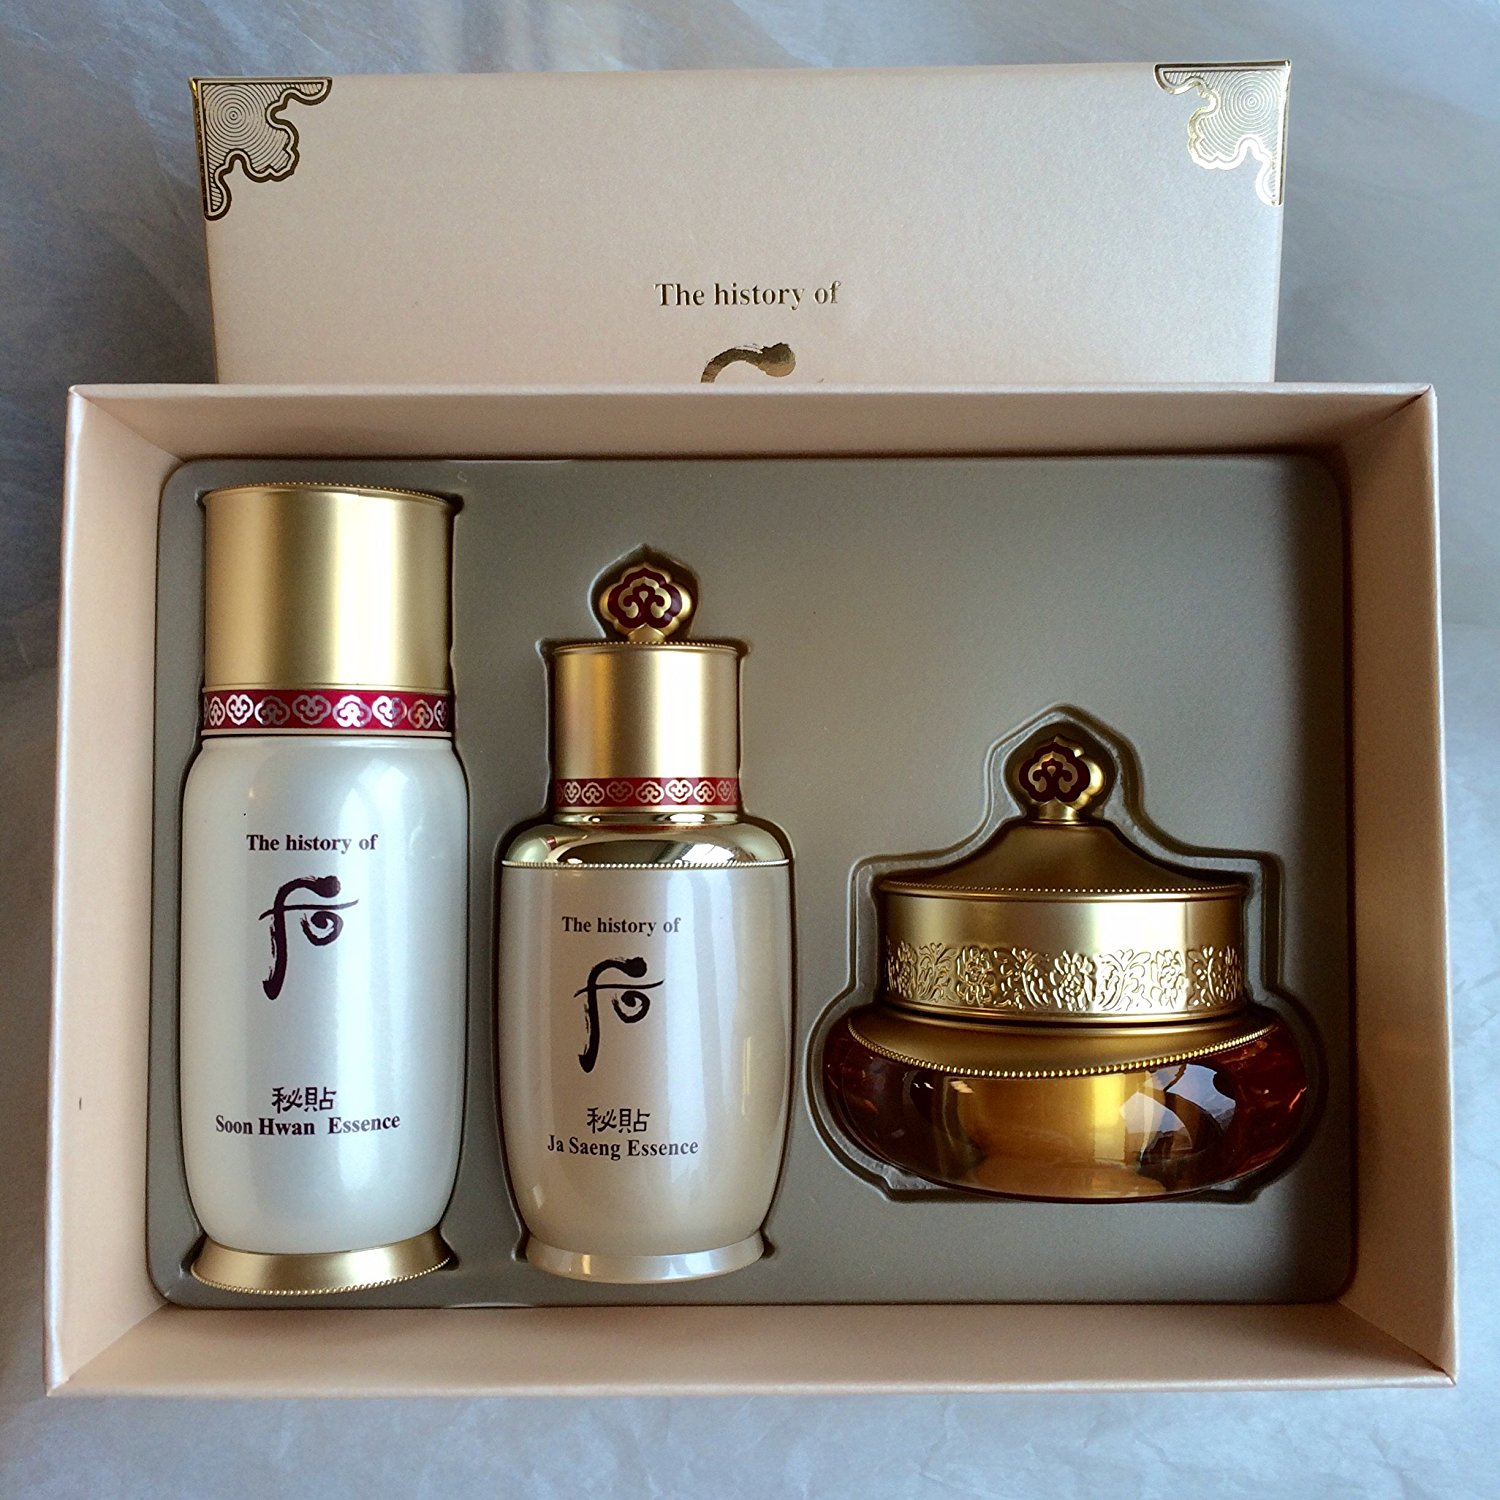 2015 New Edition - The history of Whoo Bichup Best Selling Anti-Aging Special Set